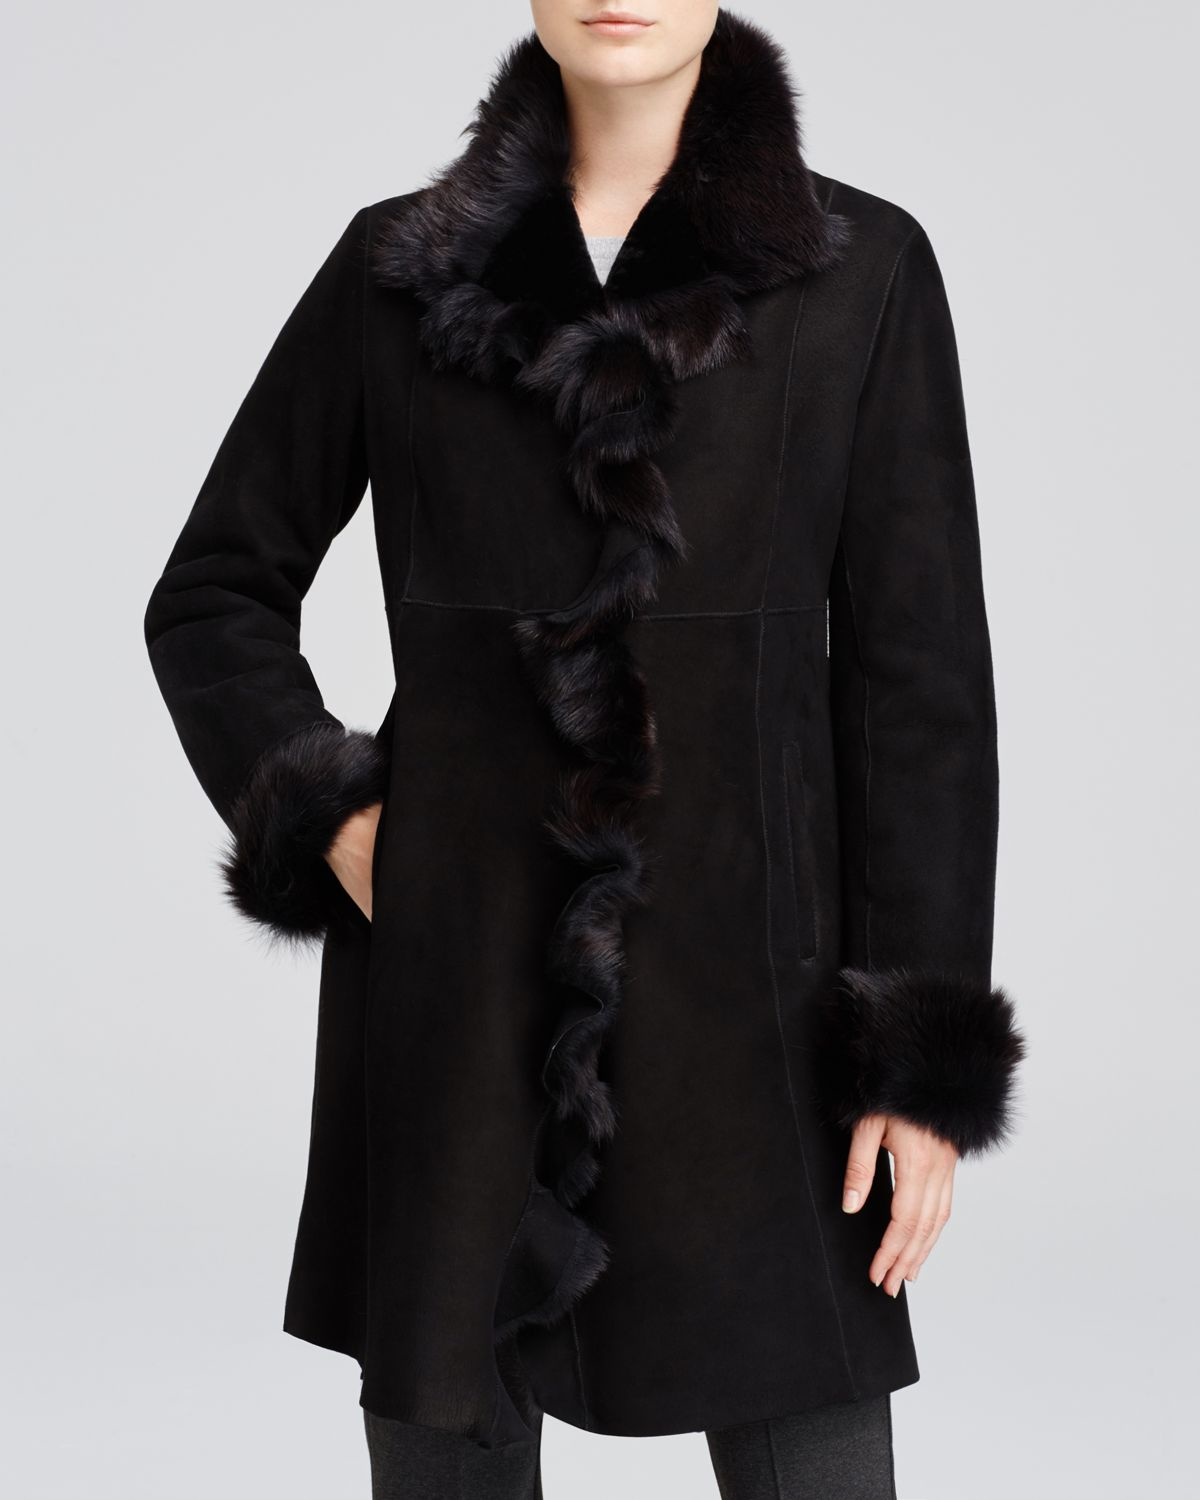 Maximilian Maximilian Lamb Shearling Coat With Ruffled Trim in